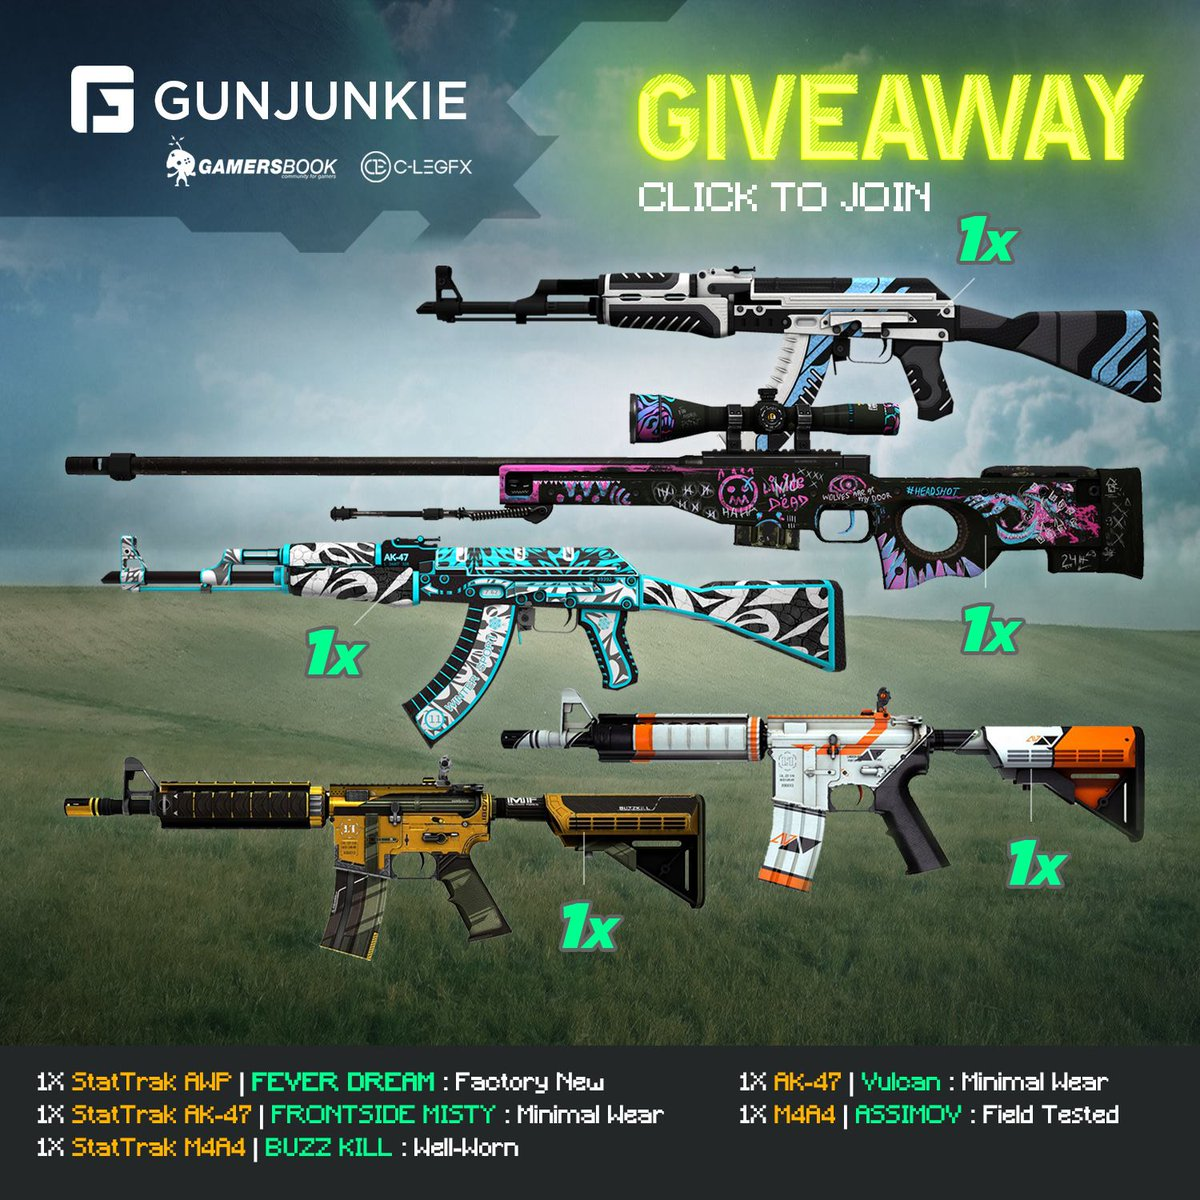 Gamersbook Com On Twitter Time For An Awesome Giveaway 1x